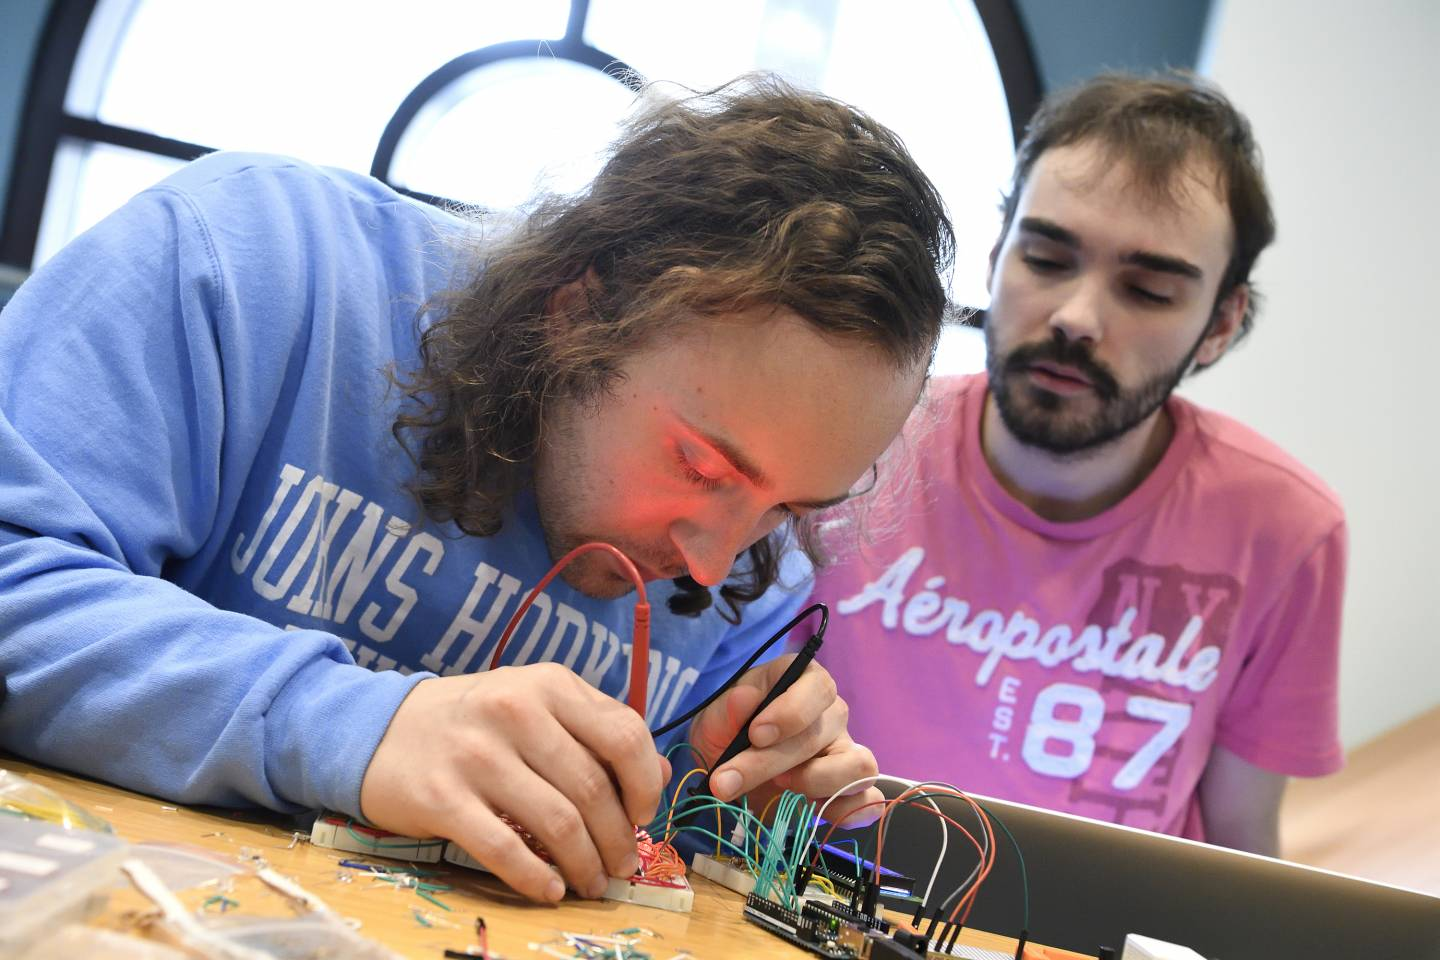 Two men build an electronic device